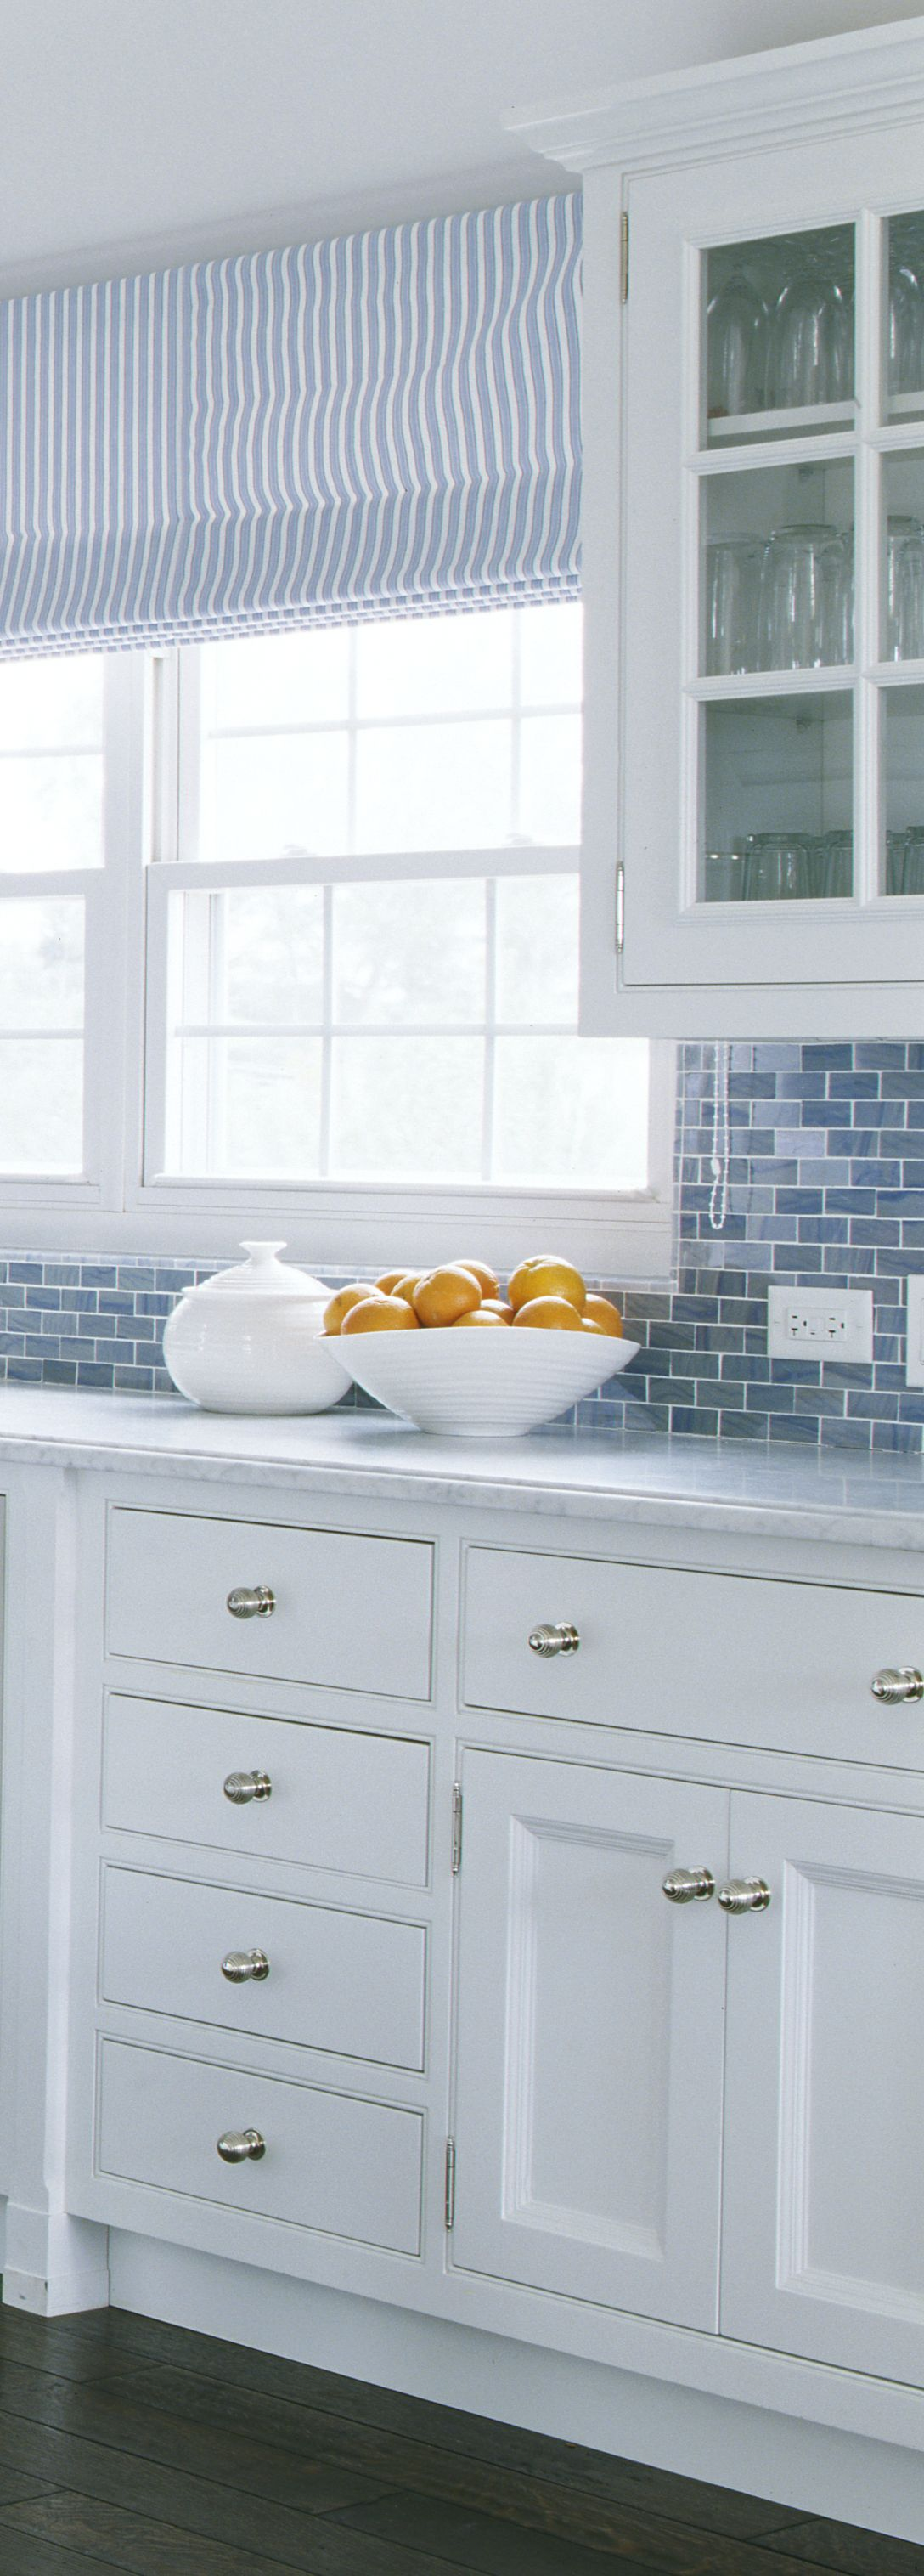 subway tiles kitchens kitchens